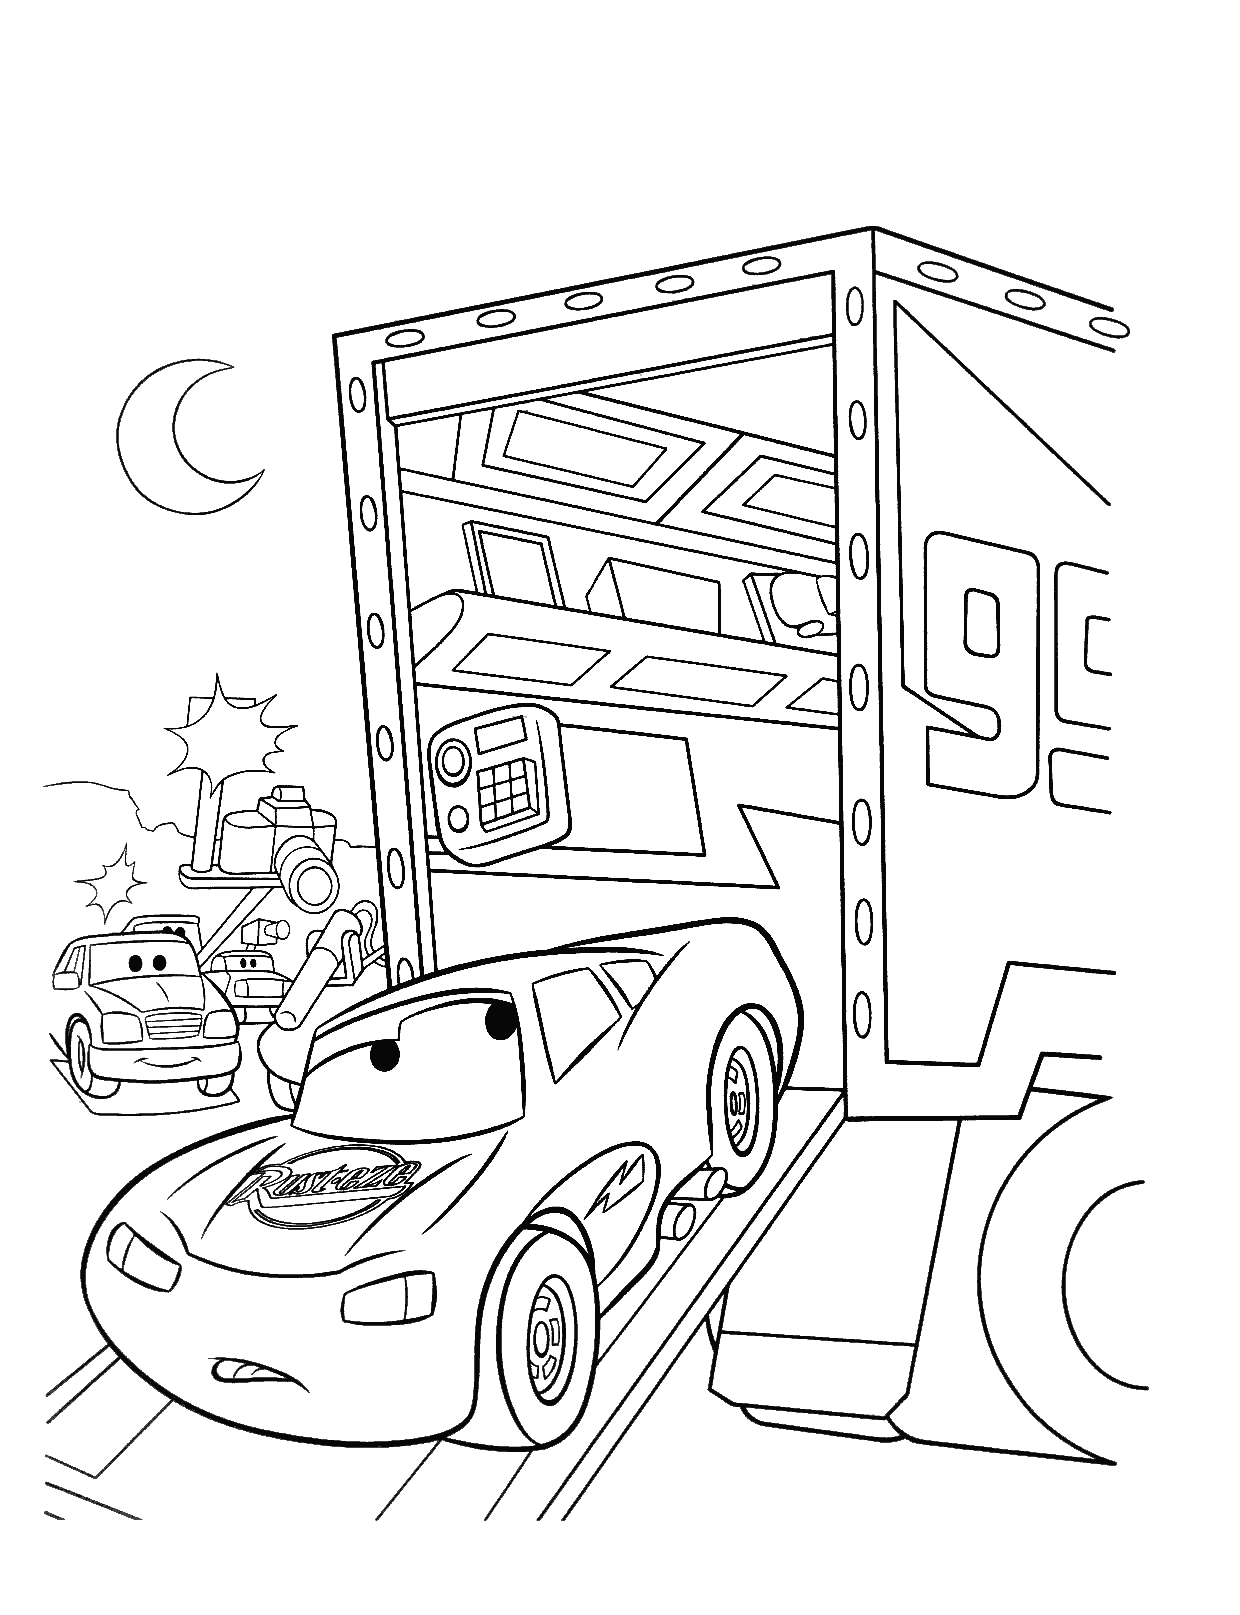 Free Printable Lightning Mcqueen Coloring Pages for Kids Best Free Download Of Car Coloring Pages Disney Cars the Movie to Print Grig3 Download